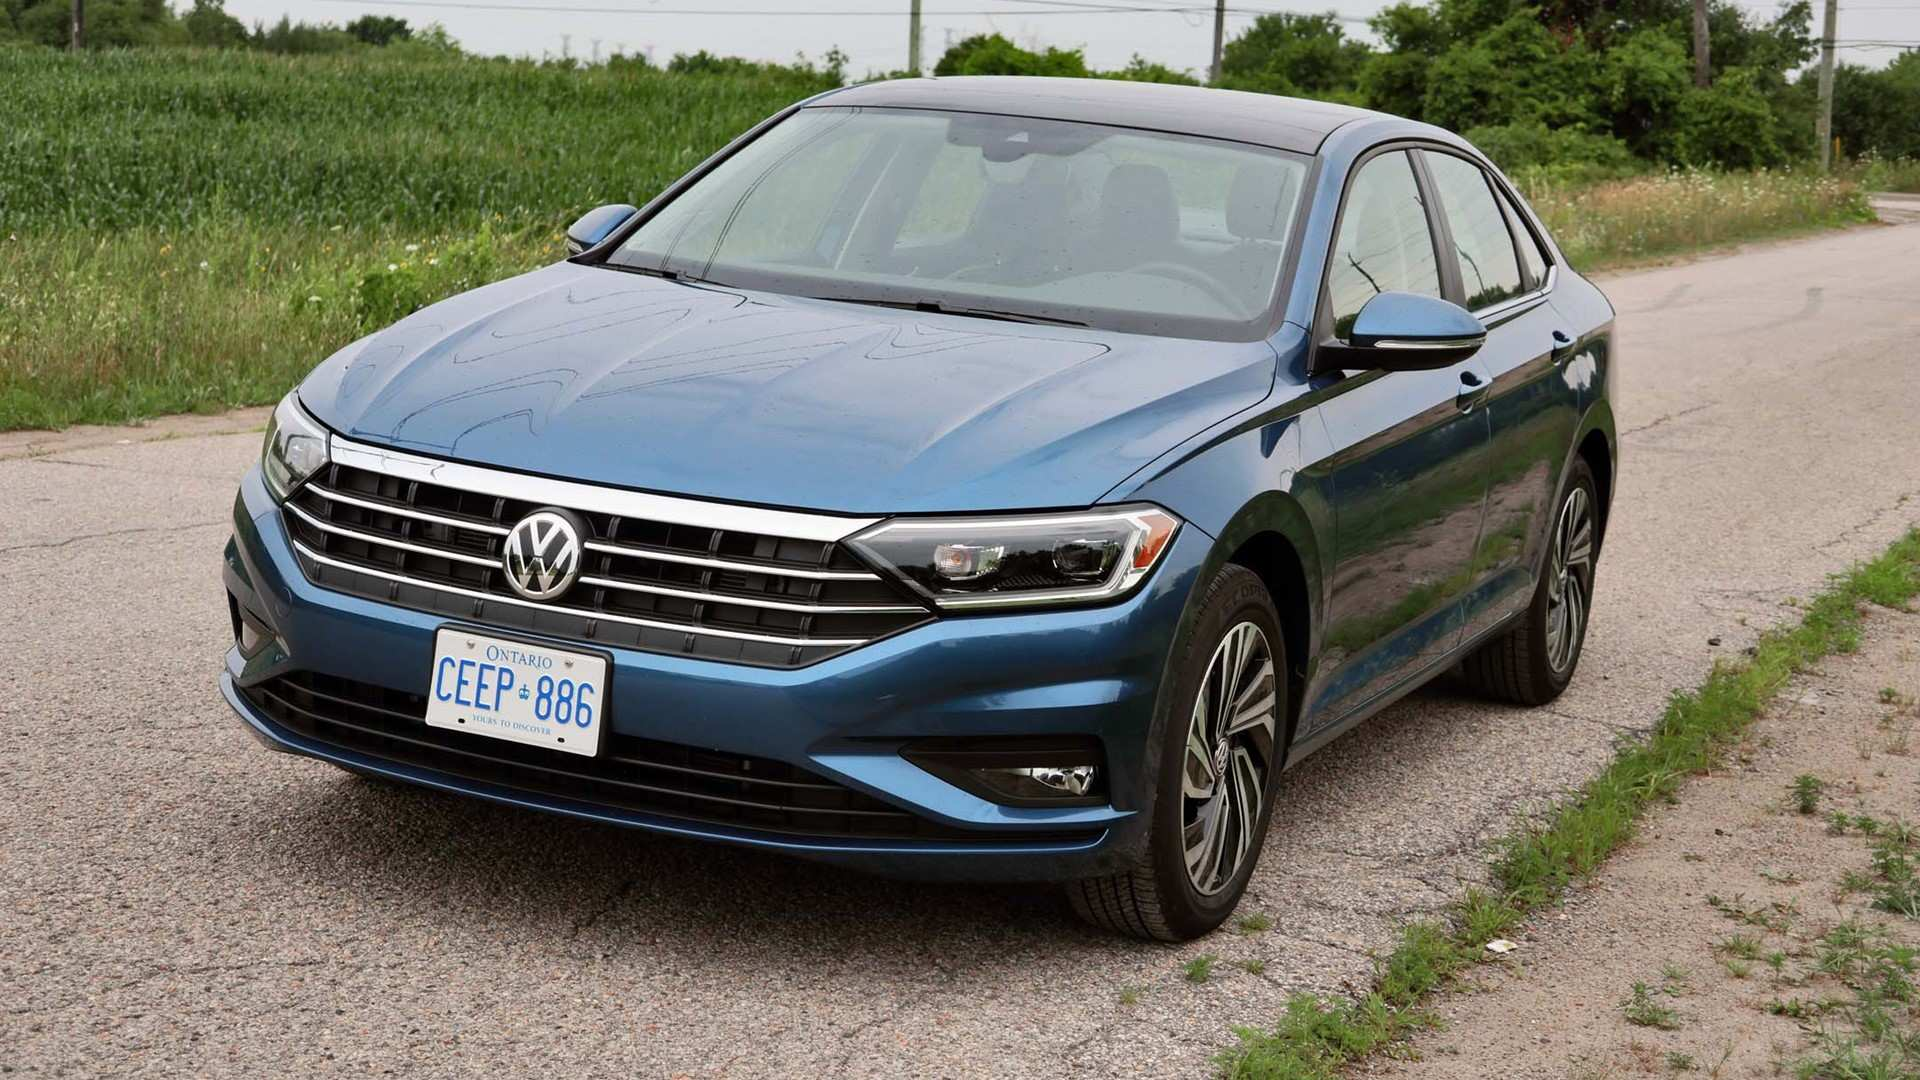 47 All New 2019 Volkswagen Jettas Price